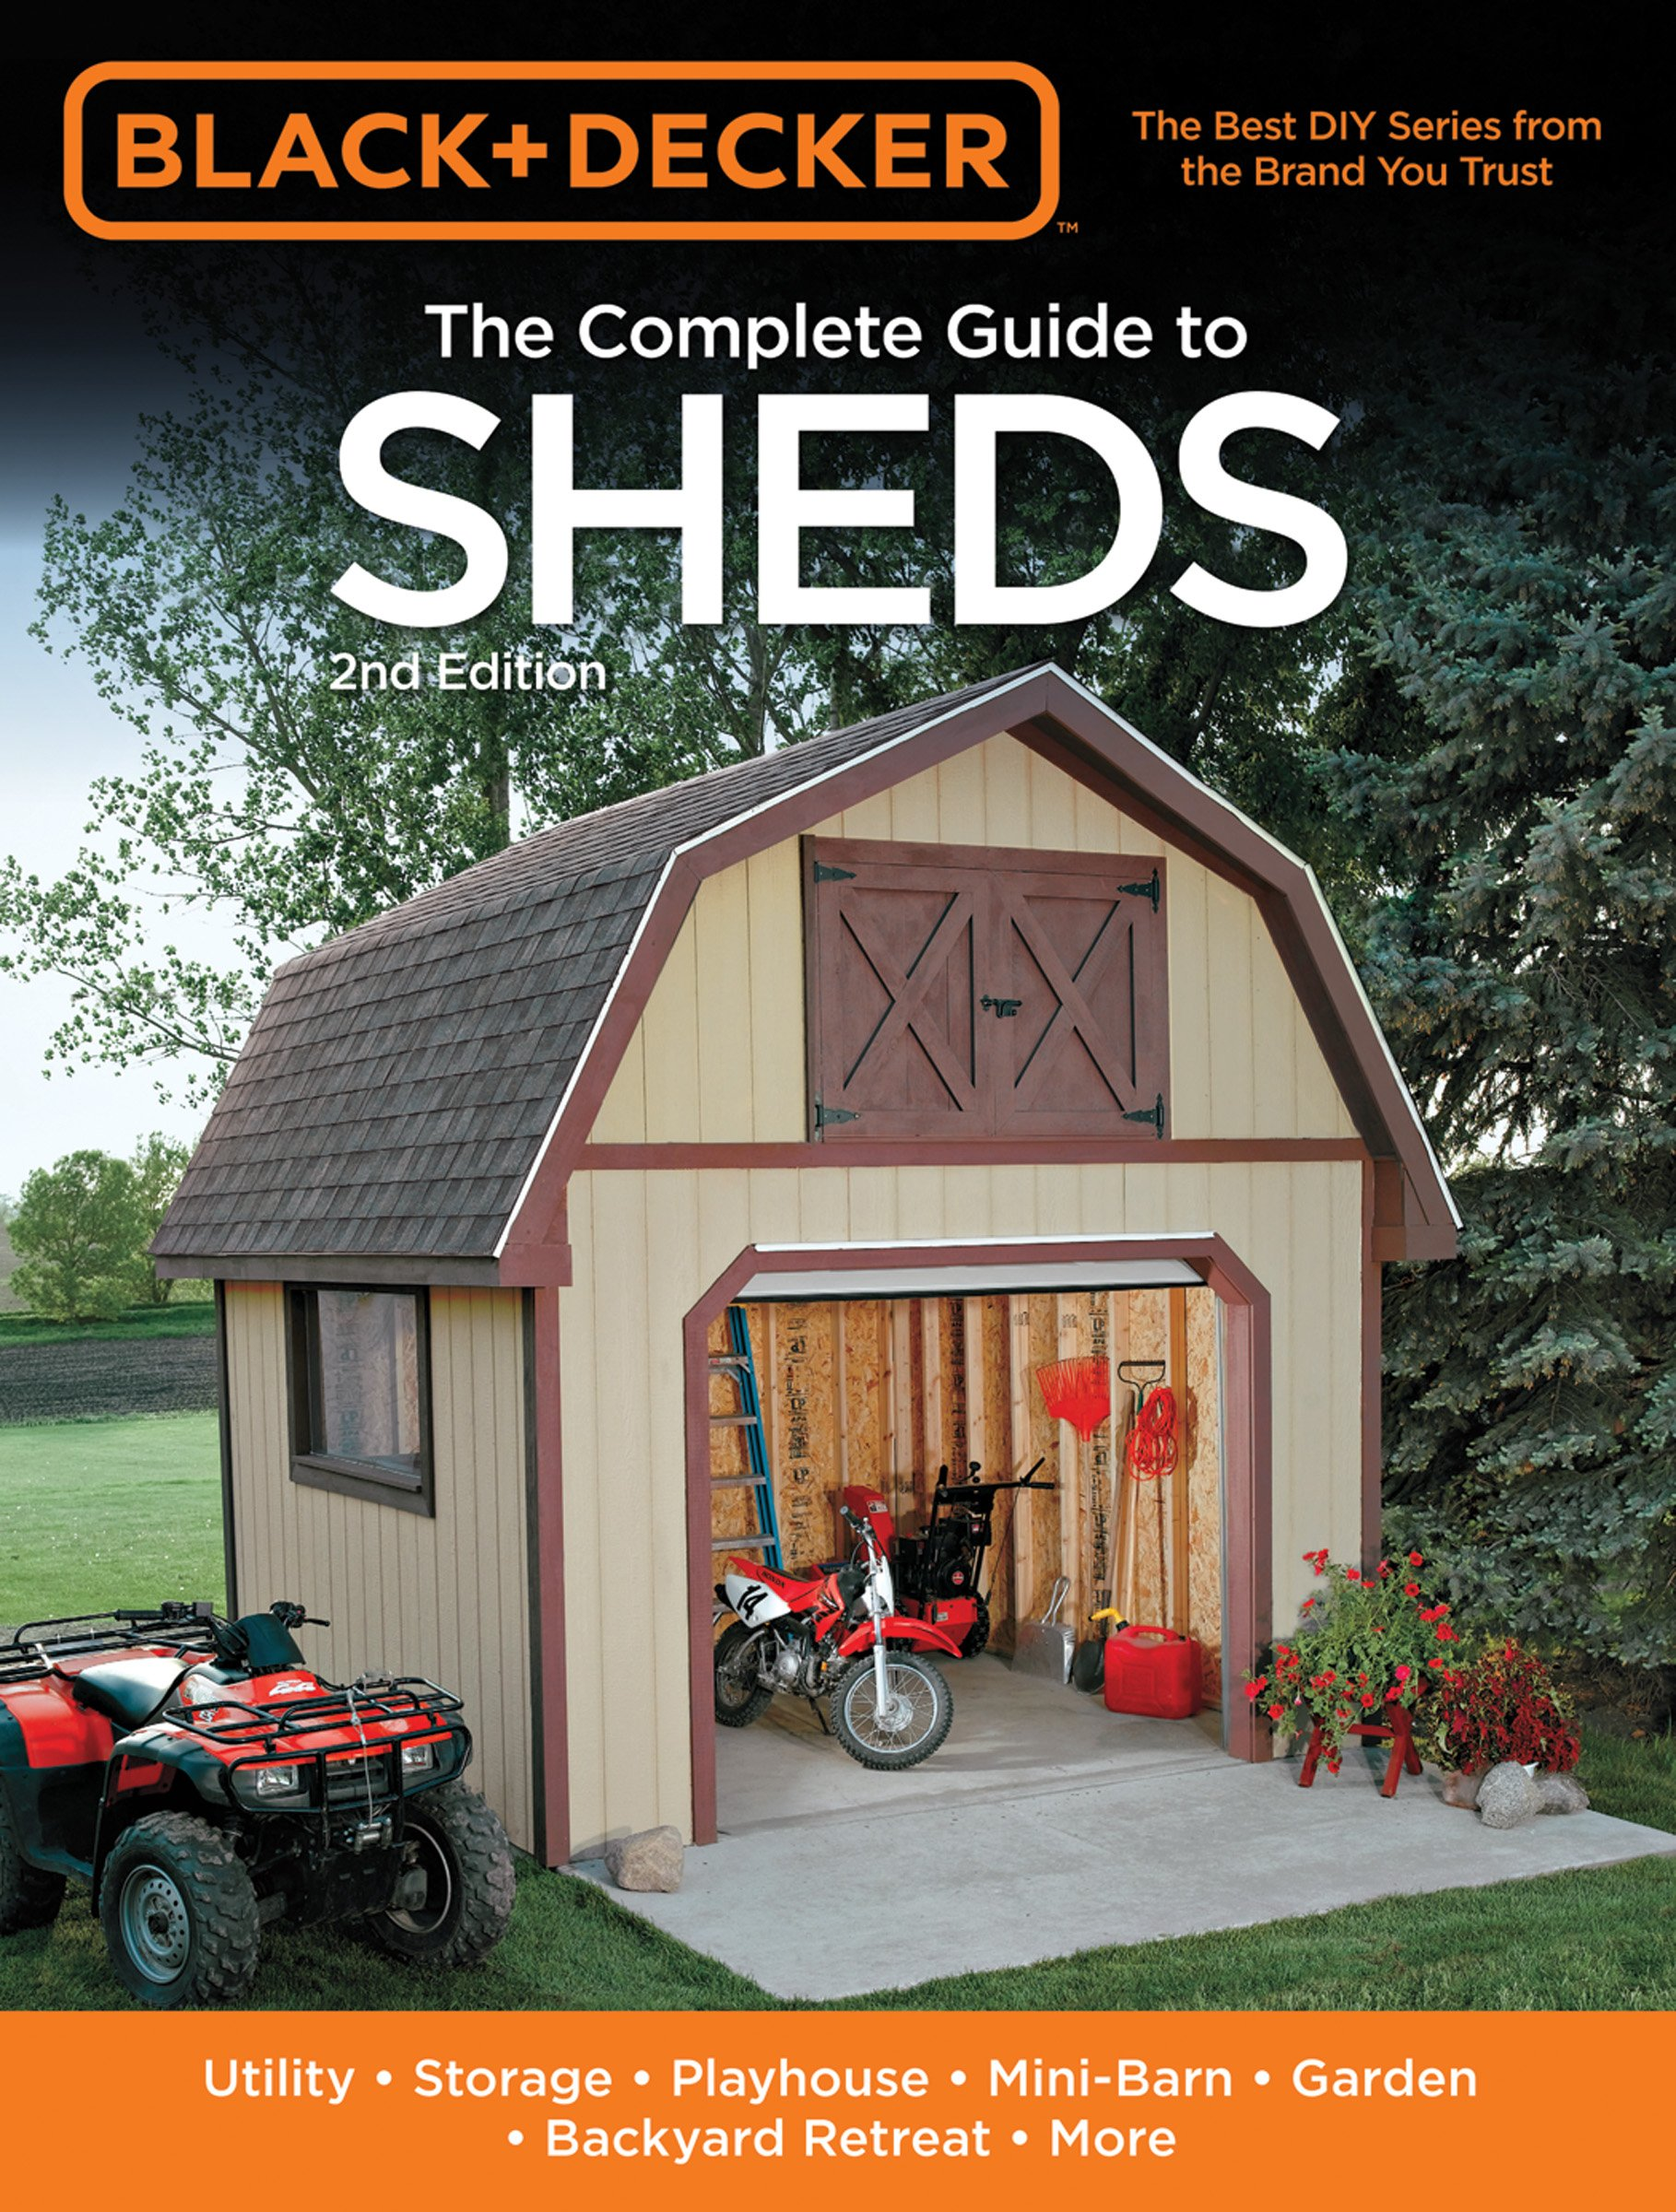 Black & Decker The Complete Guide to Sheds, 2nd Edition: Utility, Storage, Playhouse, Mini-Barn, Garden, Backyard Retreat, More (Black & Decker Complete Guide) by Cool Springs Press